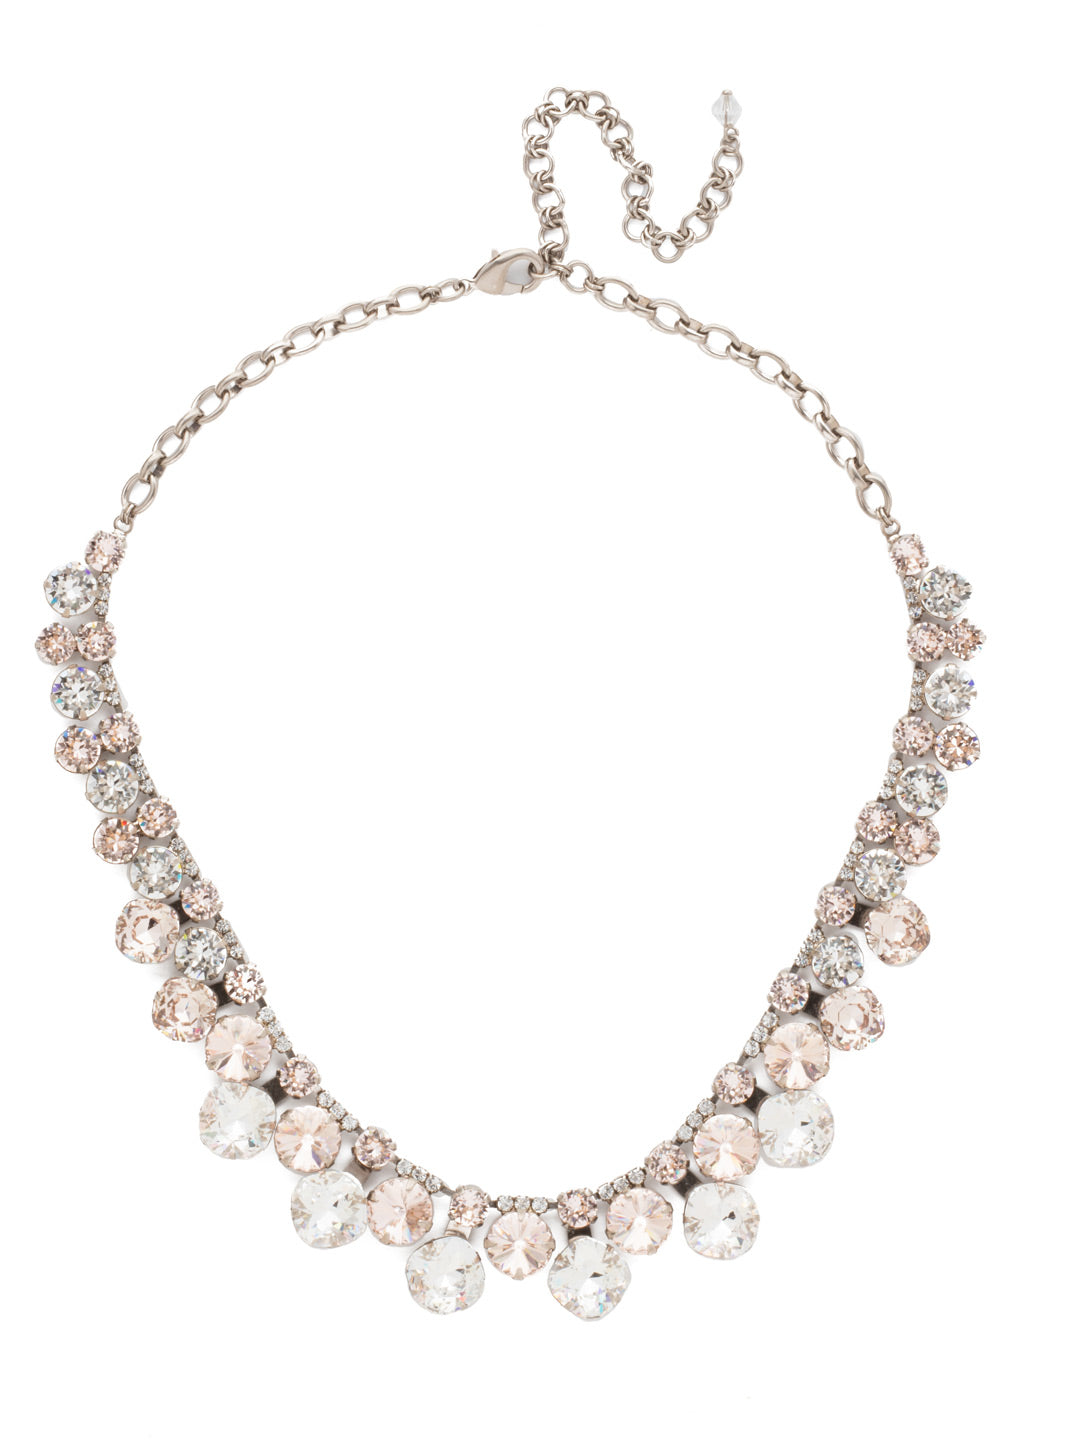 Cushion Cut Crystal Statement Collar Necklace - NCT14ASPLS